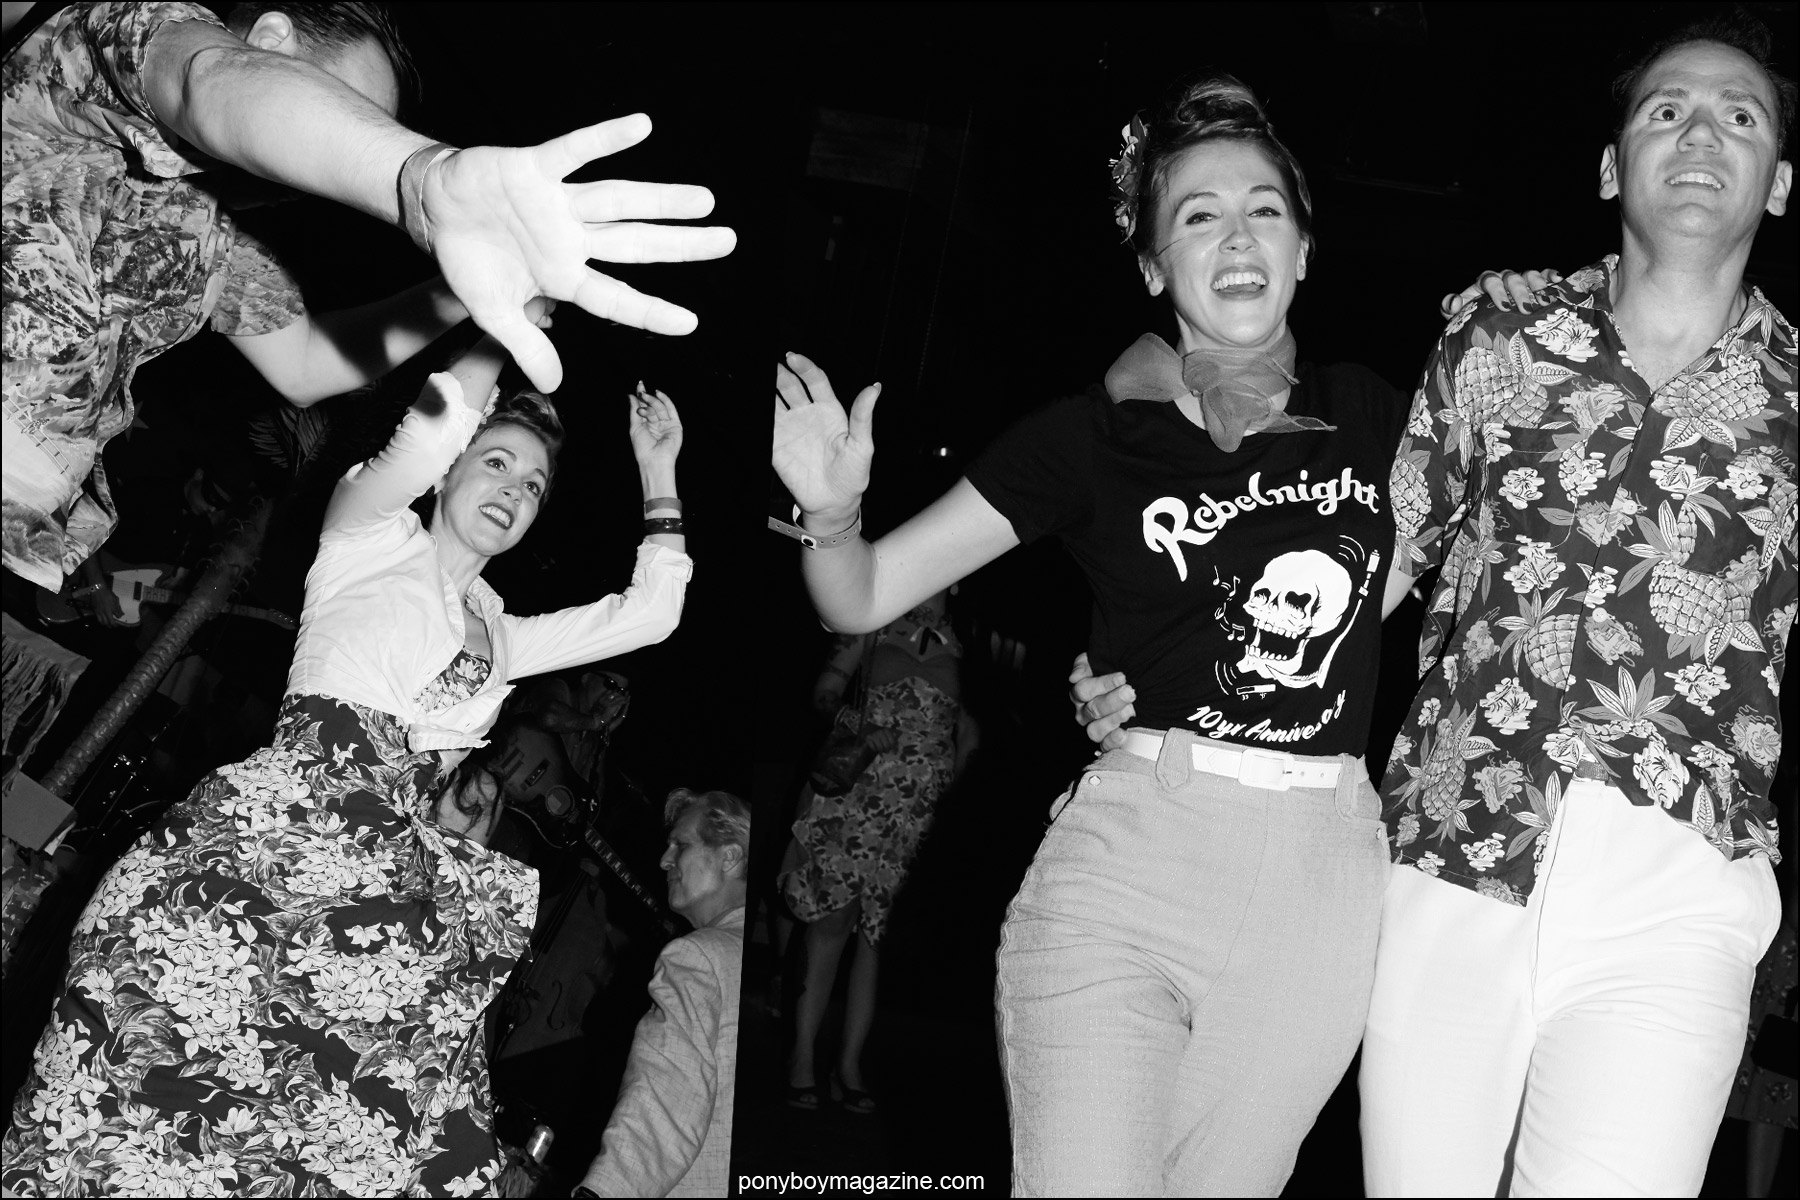 A rockabilly couple on the dance floor in Brooklyn, photographed at Hula Rock Vol 2 weekender. Photos by Alexander Thompson for Ponyboy magazine NY.